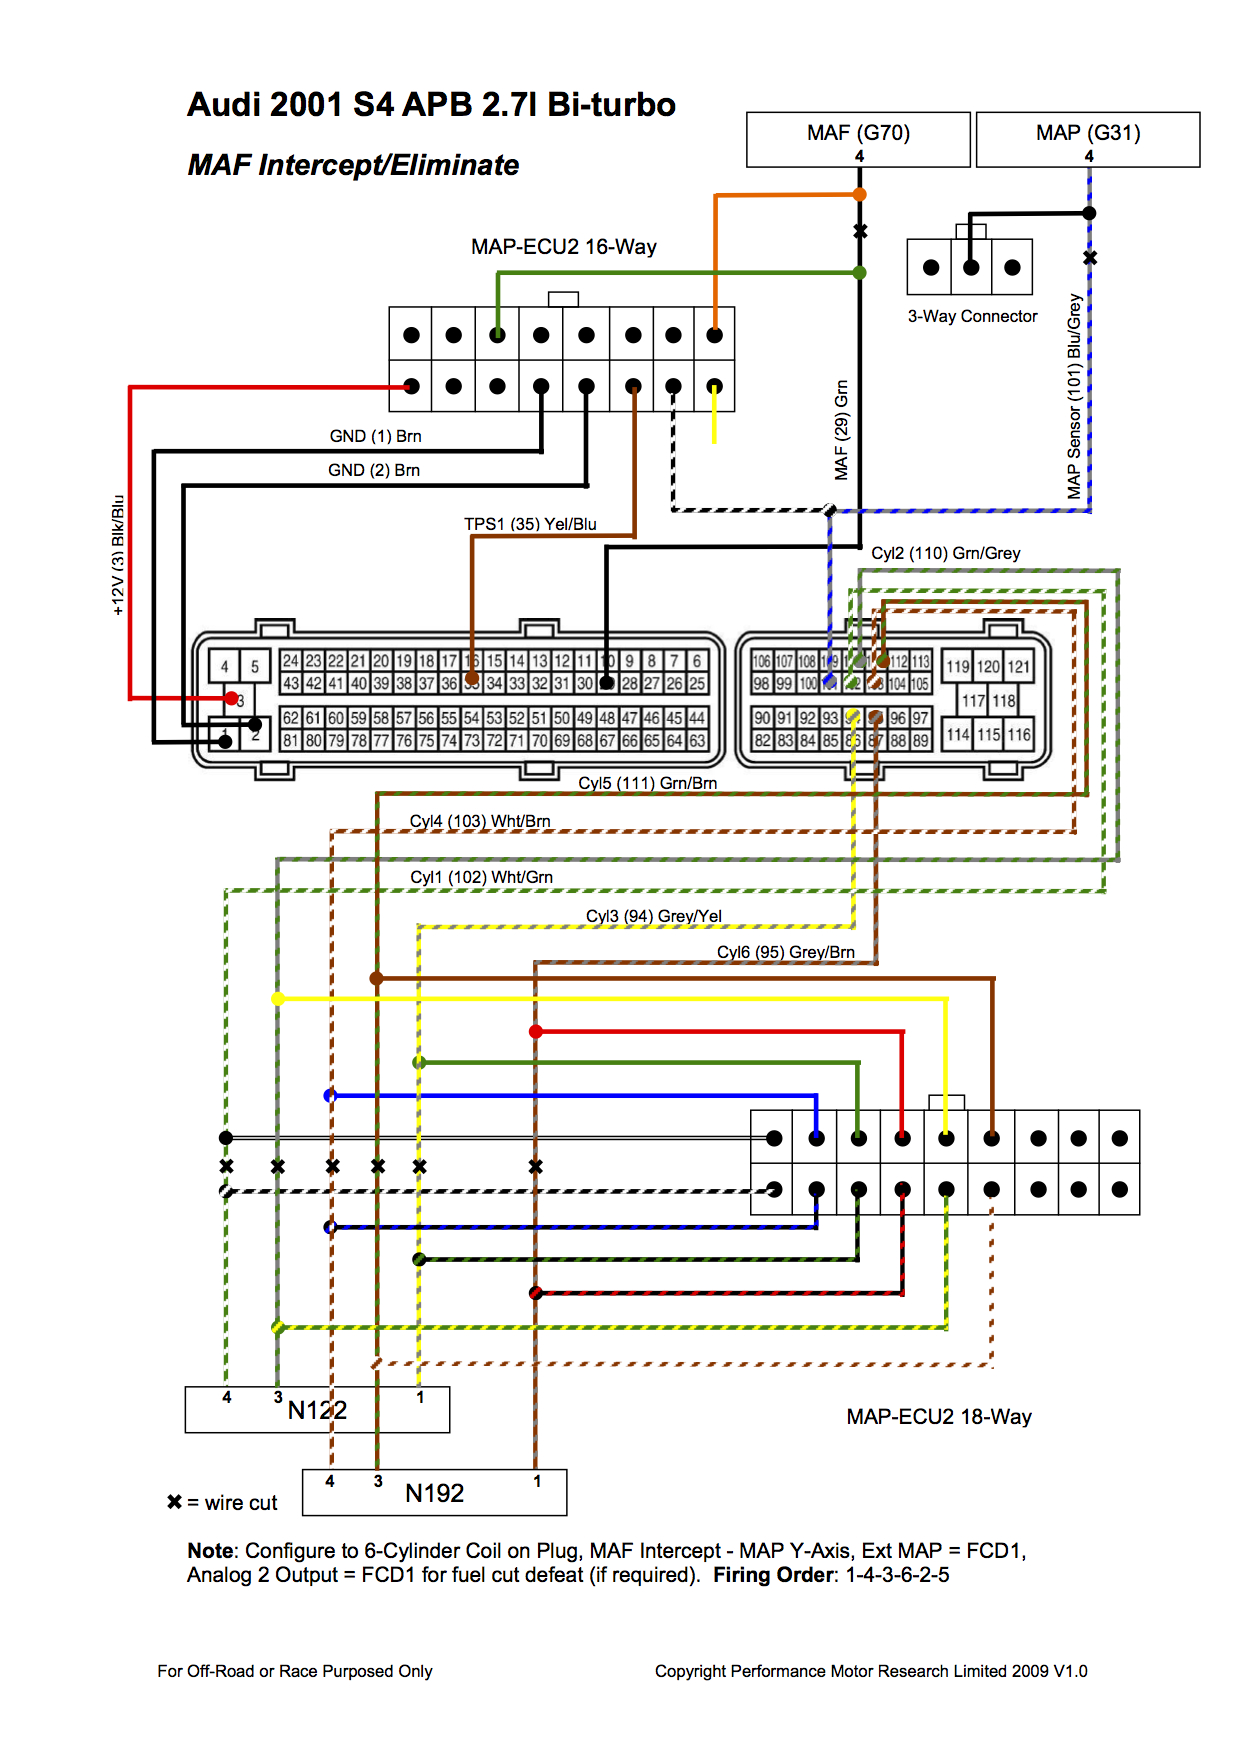 Audi S4 20011 ecu wiring diagram paccar ecu wiring diagram \u2022 wiring diagrams j  at panicattacktreatment.co